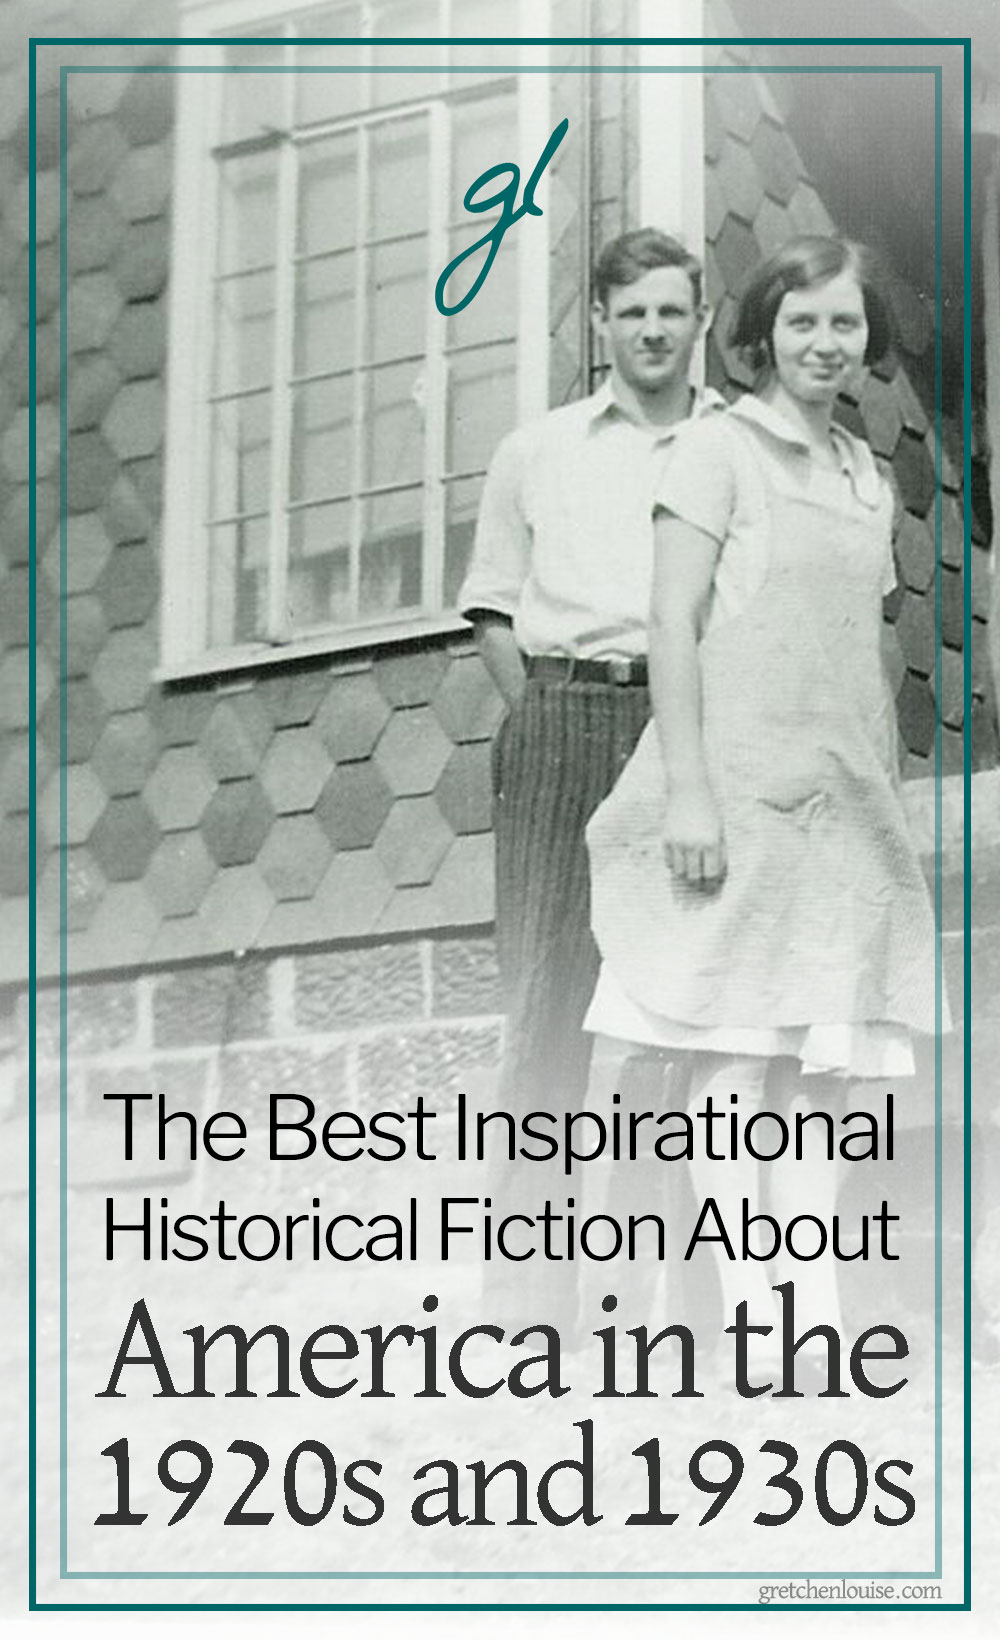 From the Jazz Age of the Roaring Twenties to the New Deal Era, it was a tumultuous yet definitive time in our country's history. Here I've collected some of my favorite inspirational fiction set in north America in the 1920s and 1930s. Stories of Americans who persevered through hardships and kept building, kept believing via @GretLouise